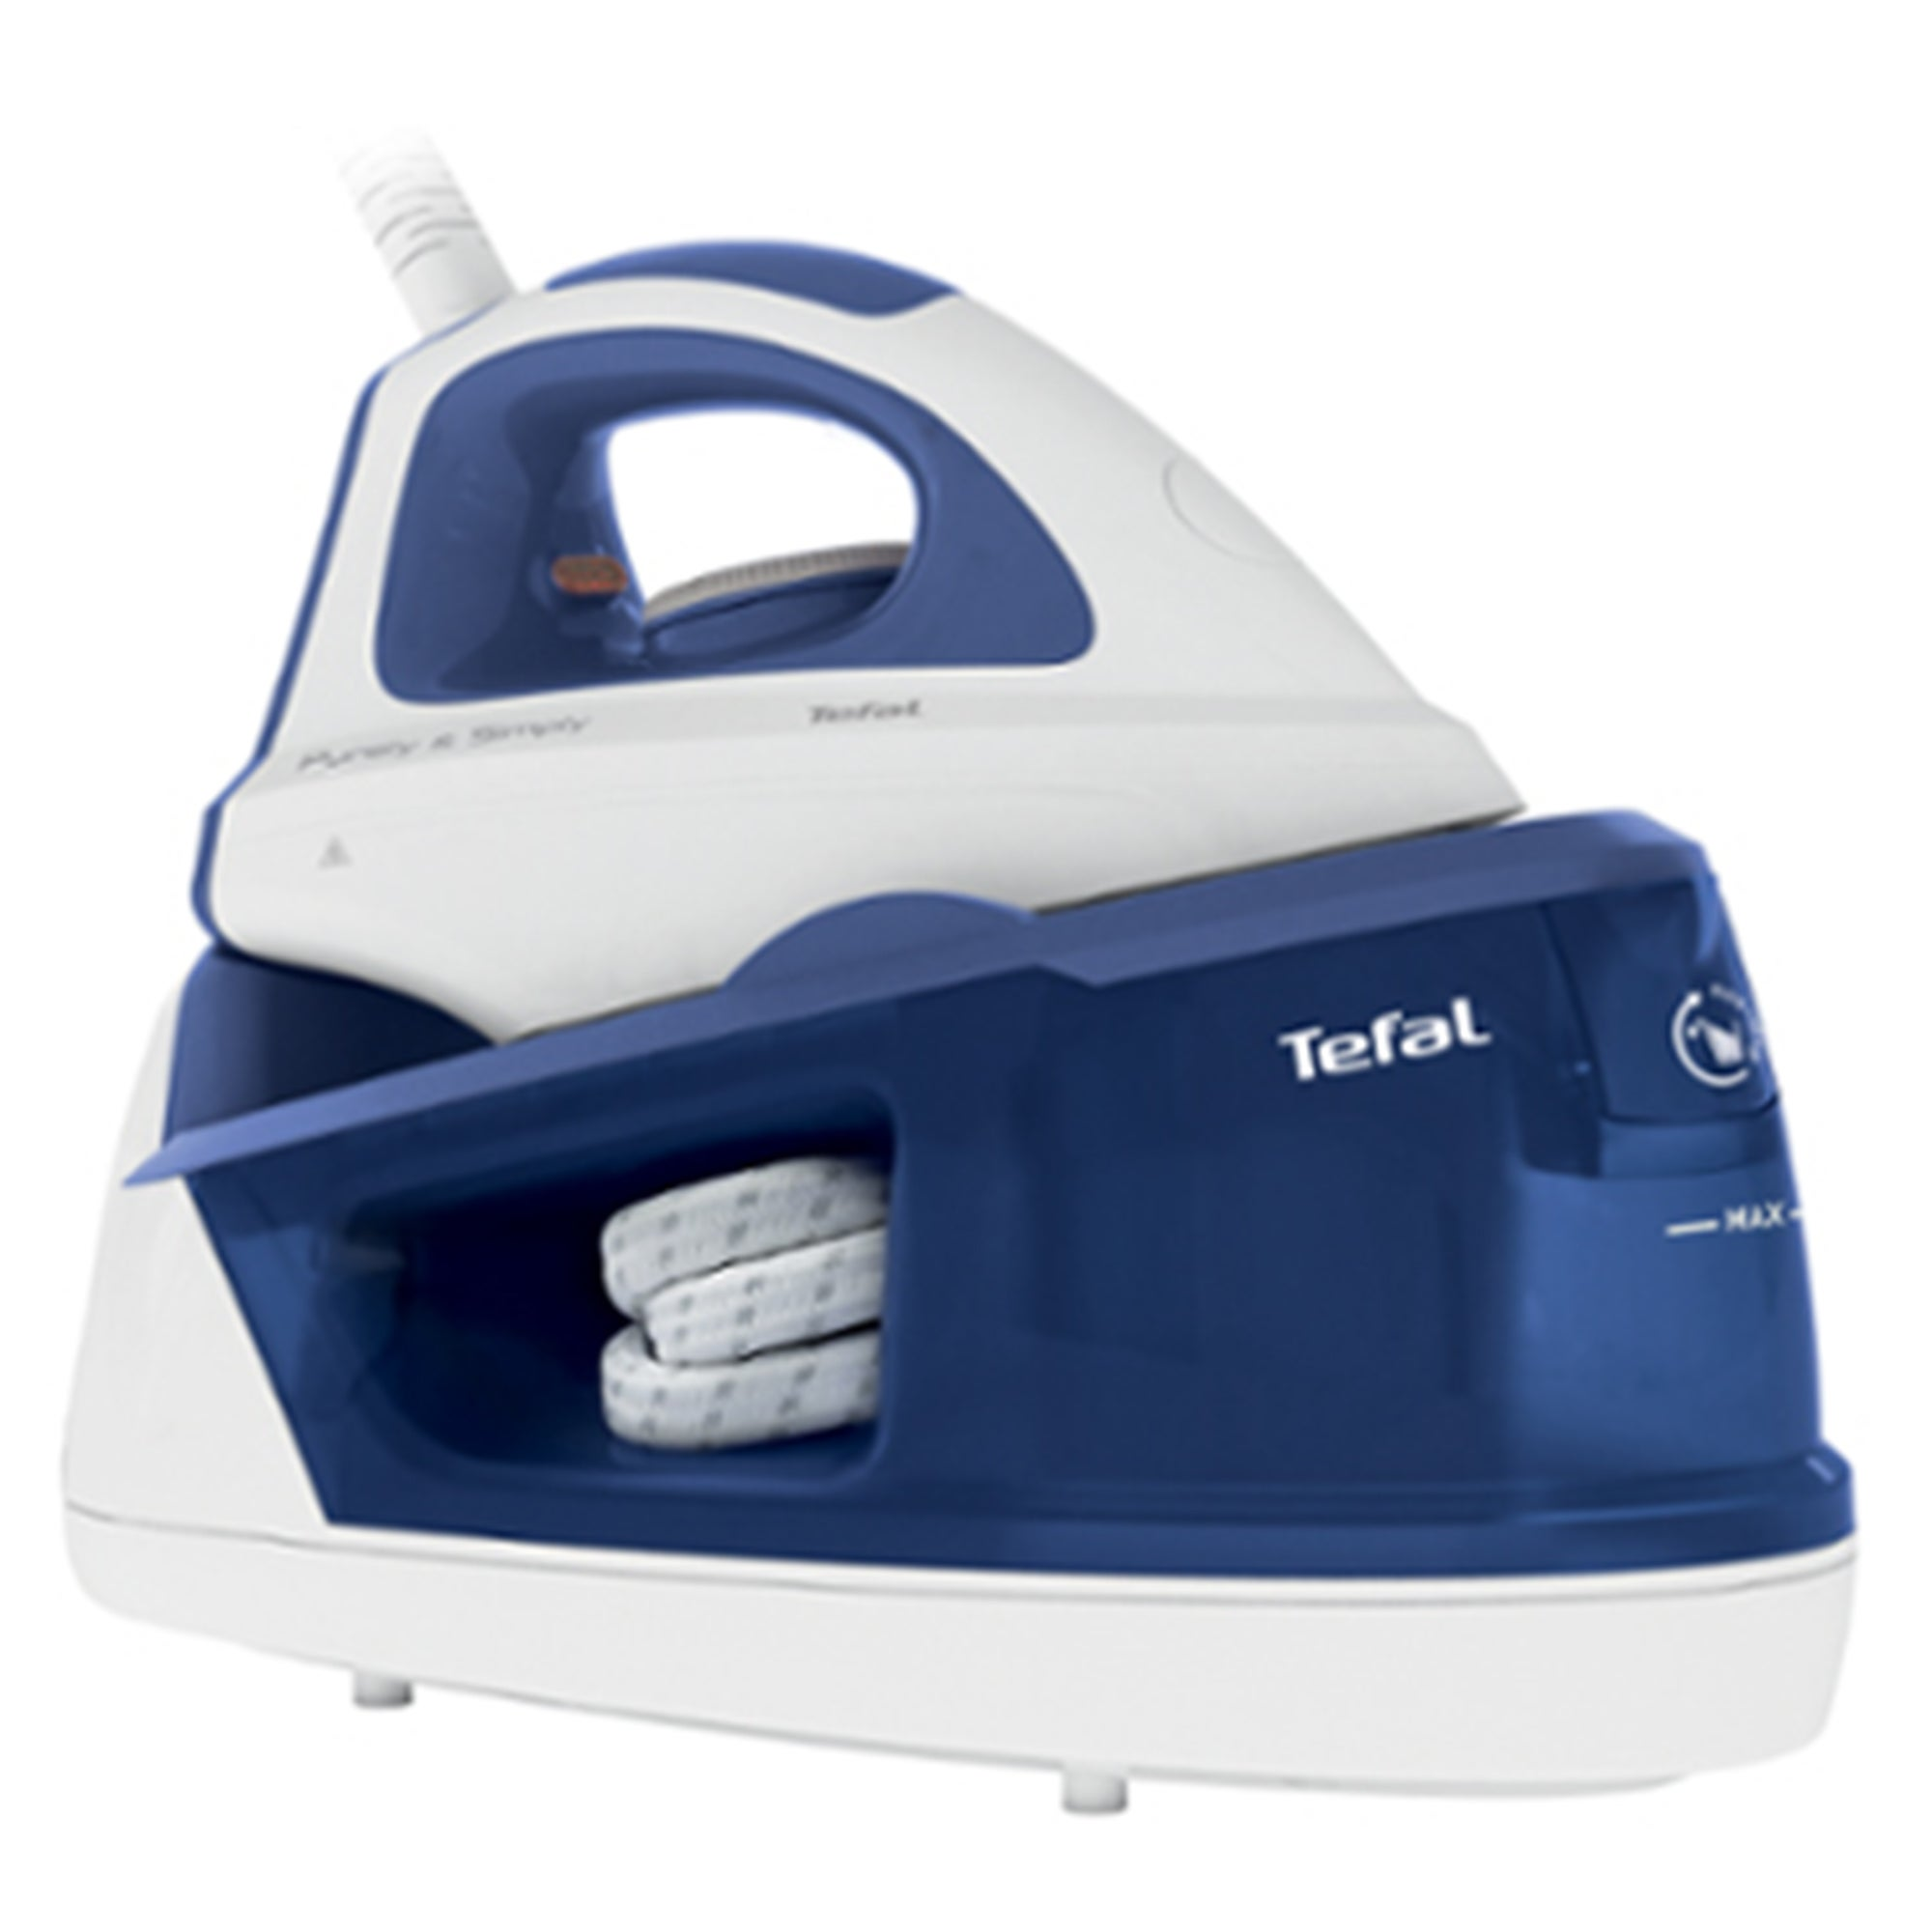 Tefal Pure Simply 2200W Steam Generator Iron White and Blue